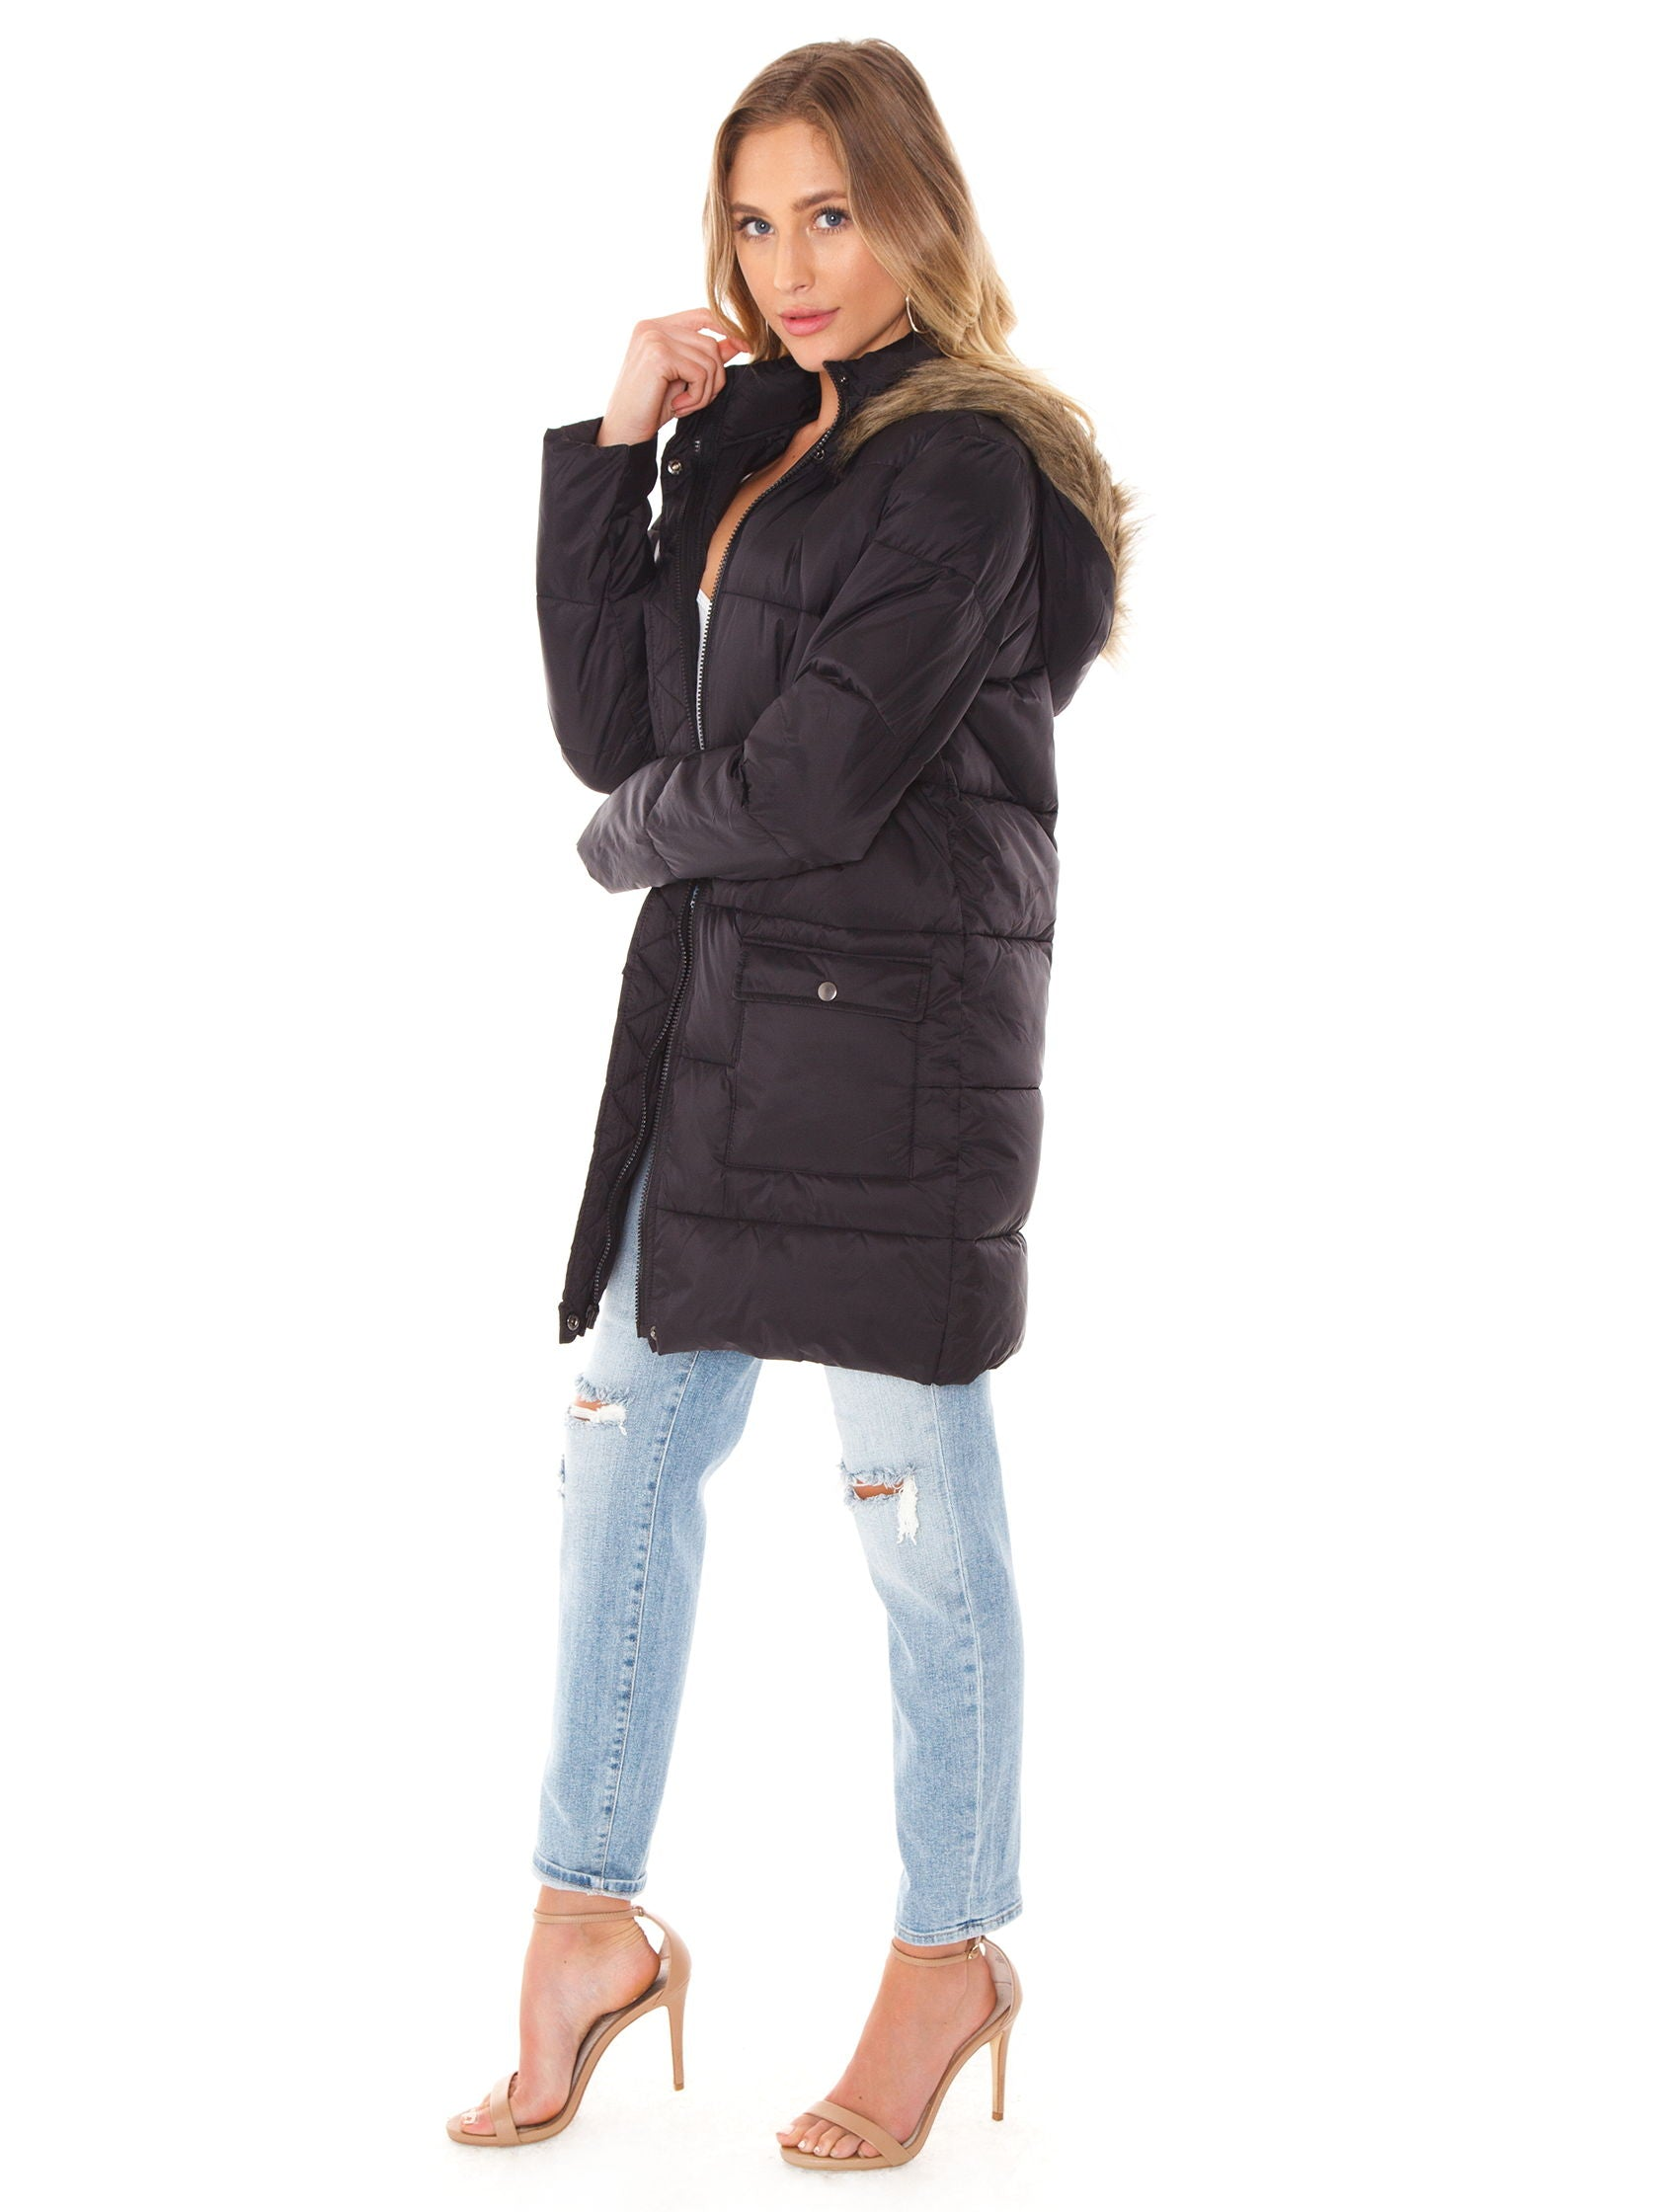 Woman wearing a jacket rental from BB Dakota called Moon Walker Puffer Jacket